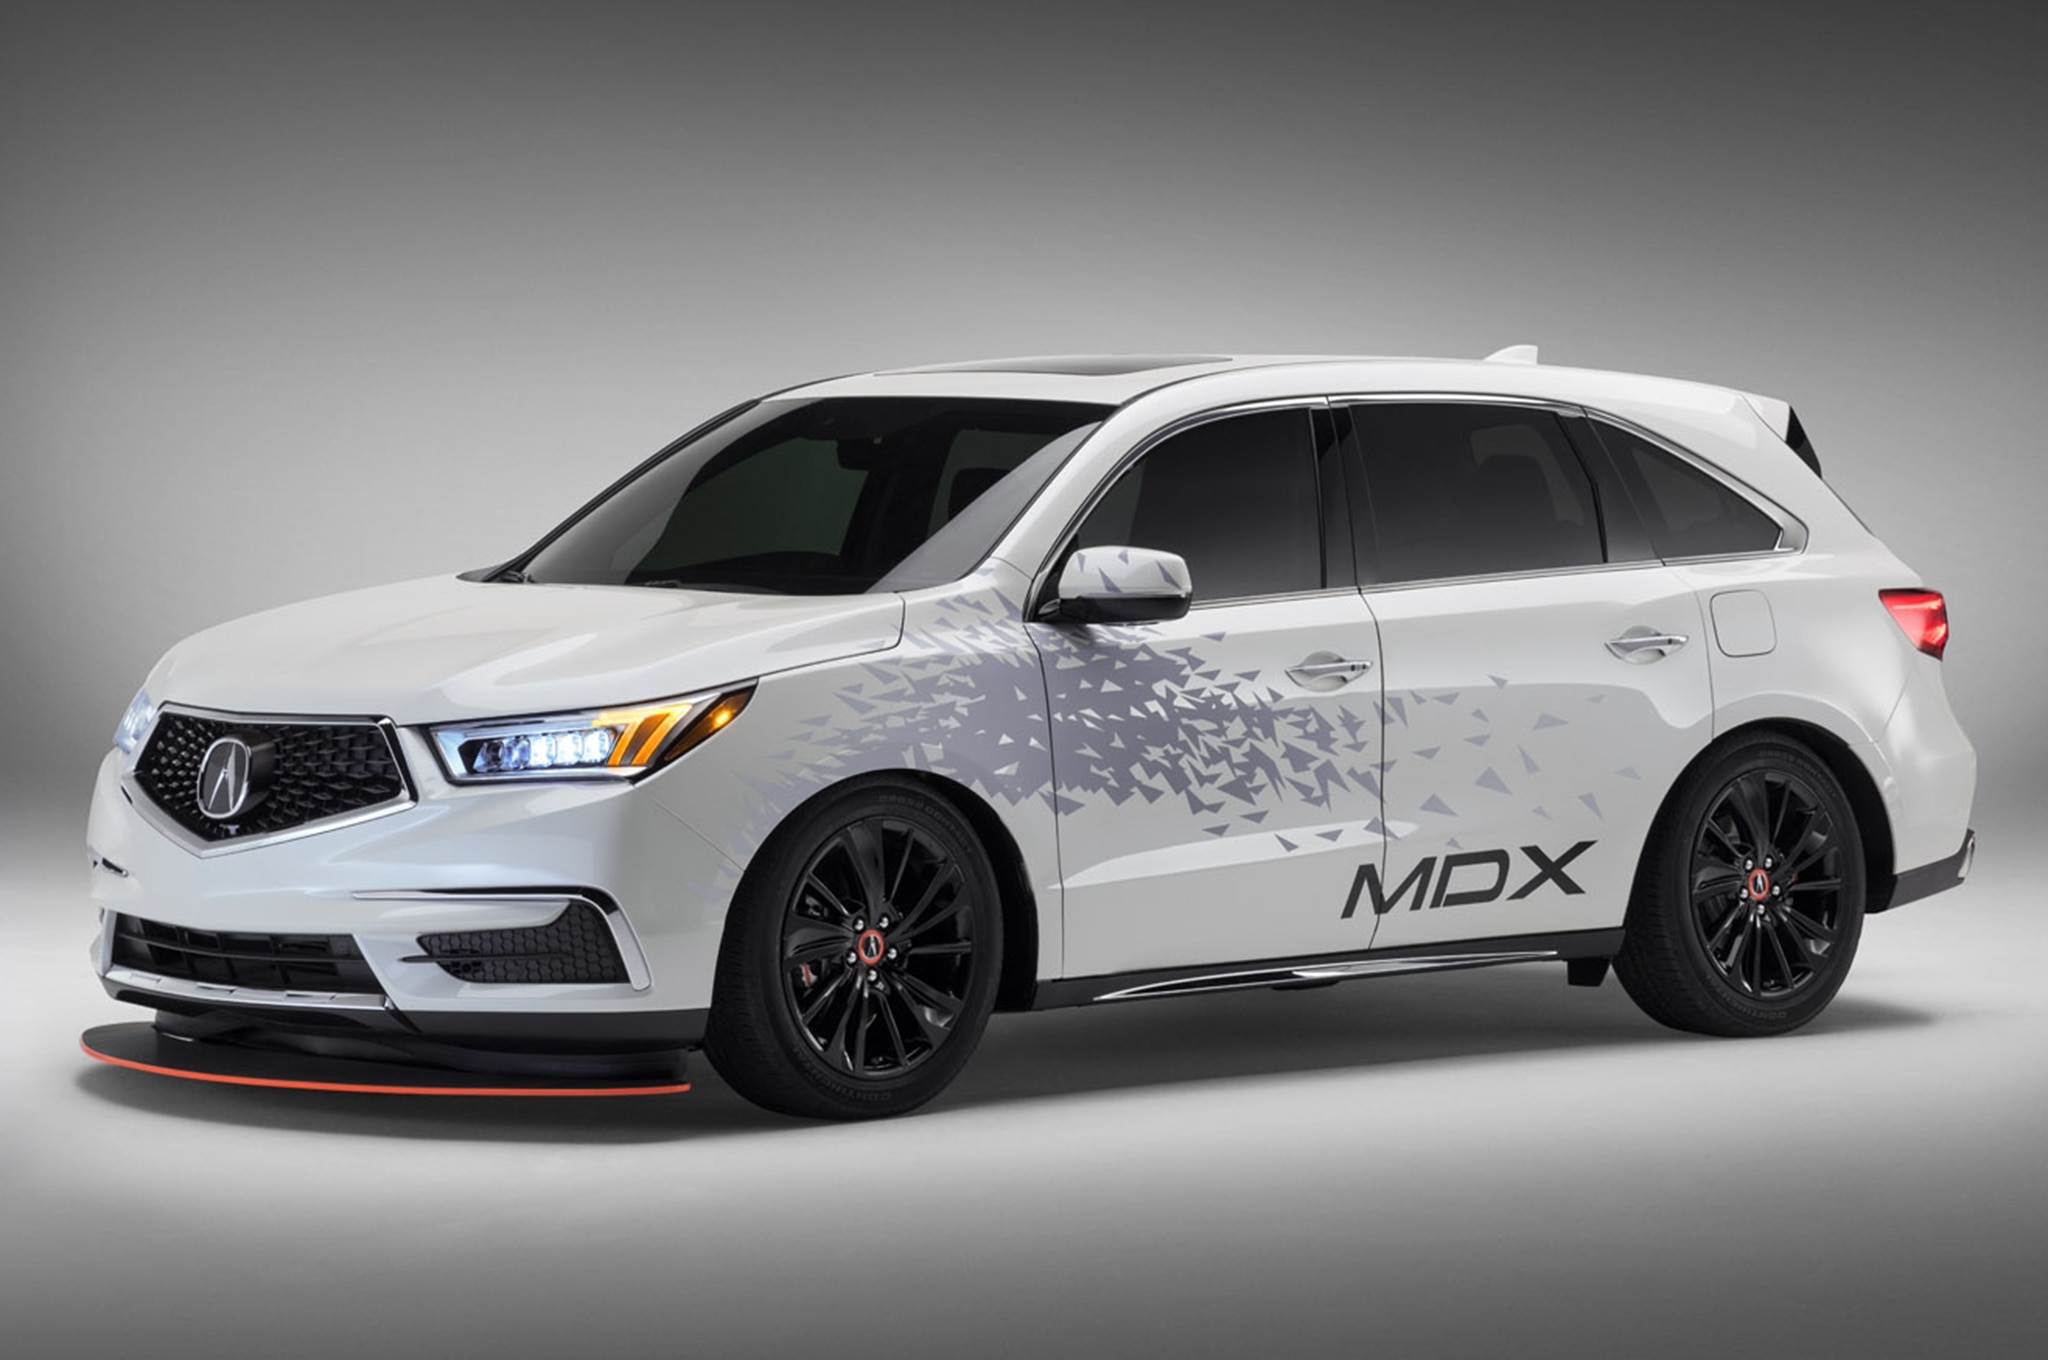 Lowered Acura Mdx All New Car Release Date 2019 2020 20152016 Hyundai Sonata Curt T Connector Wiring Harness 56247 Sema 2016 Customized To Tow Nsx Gt3 Racer